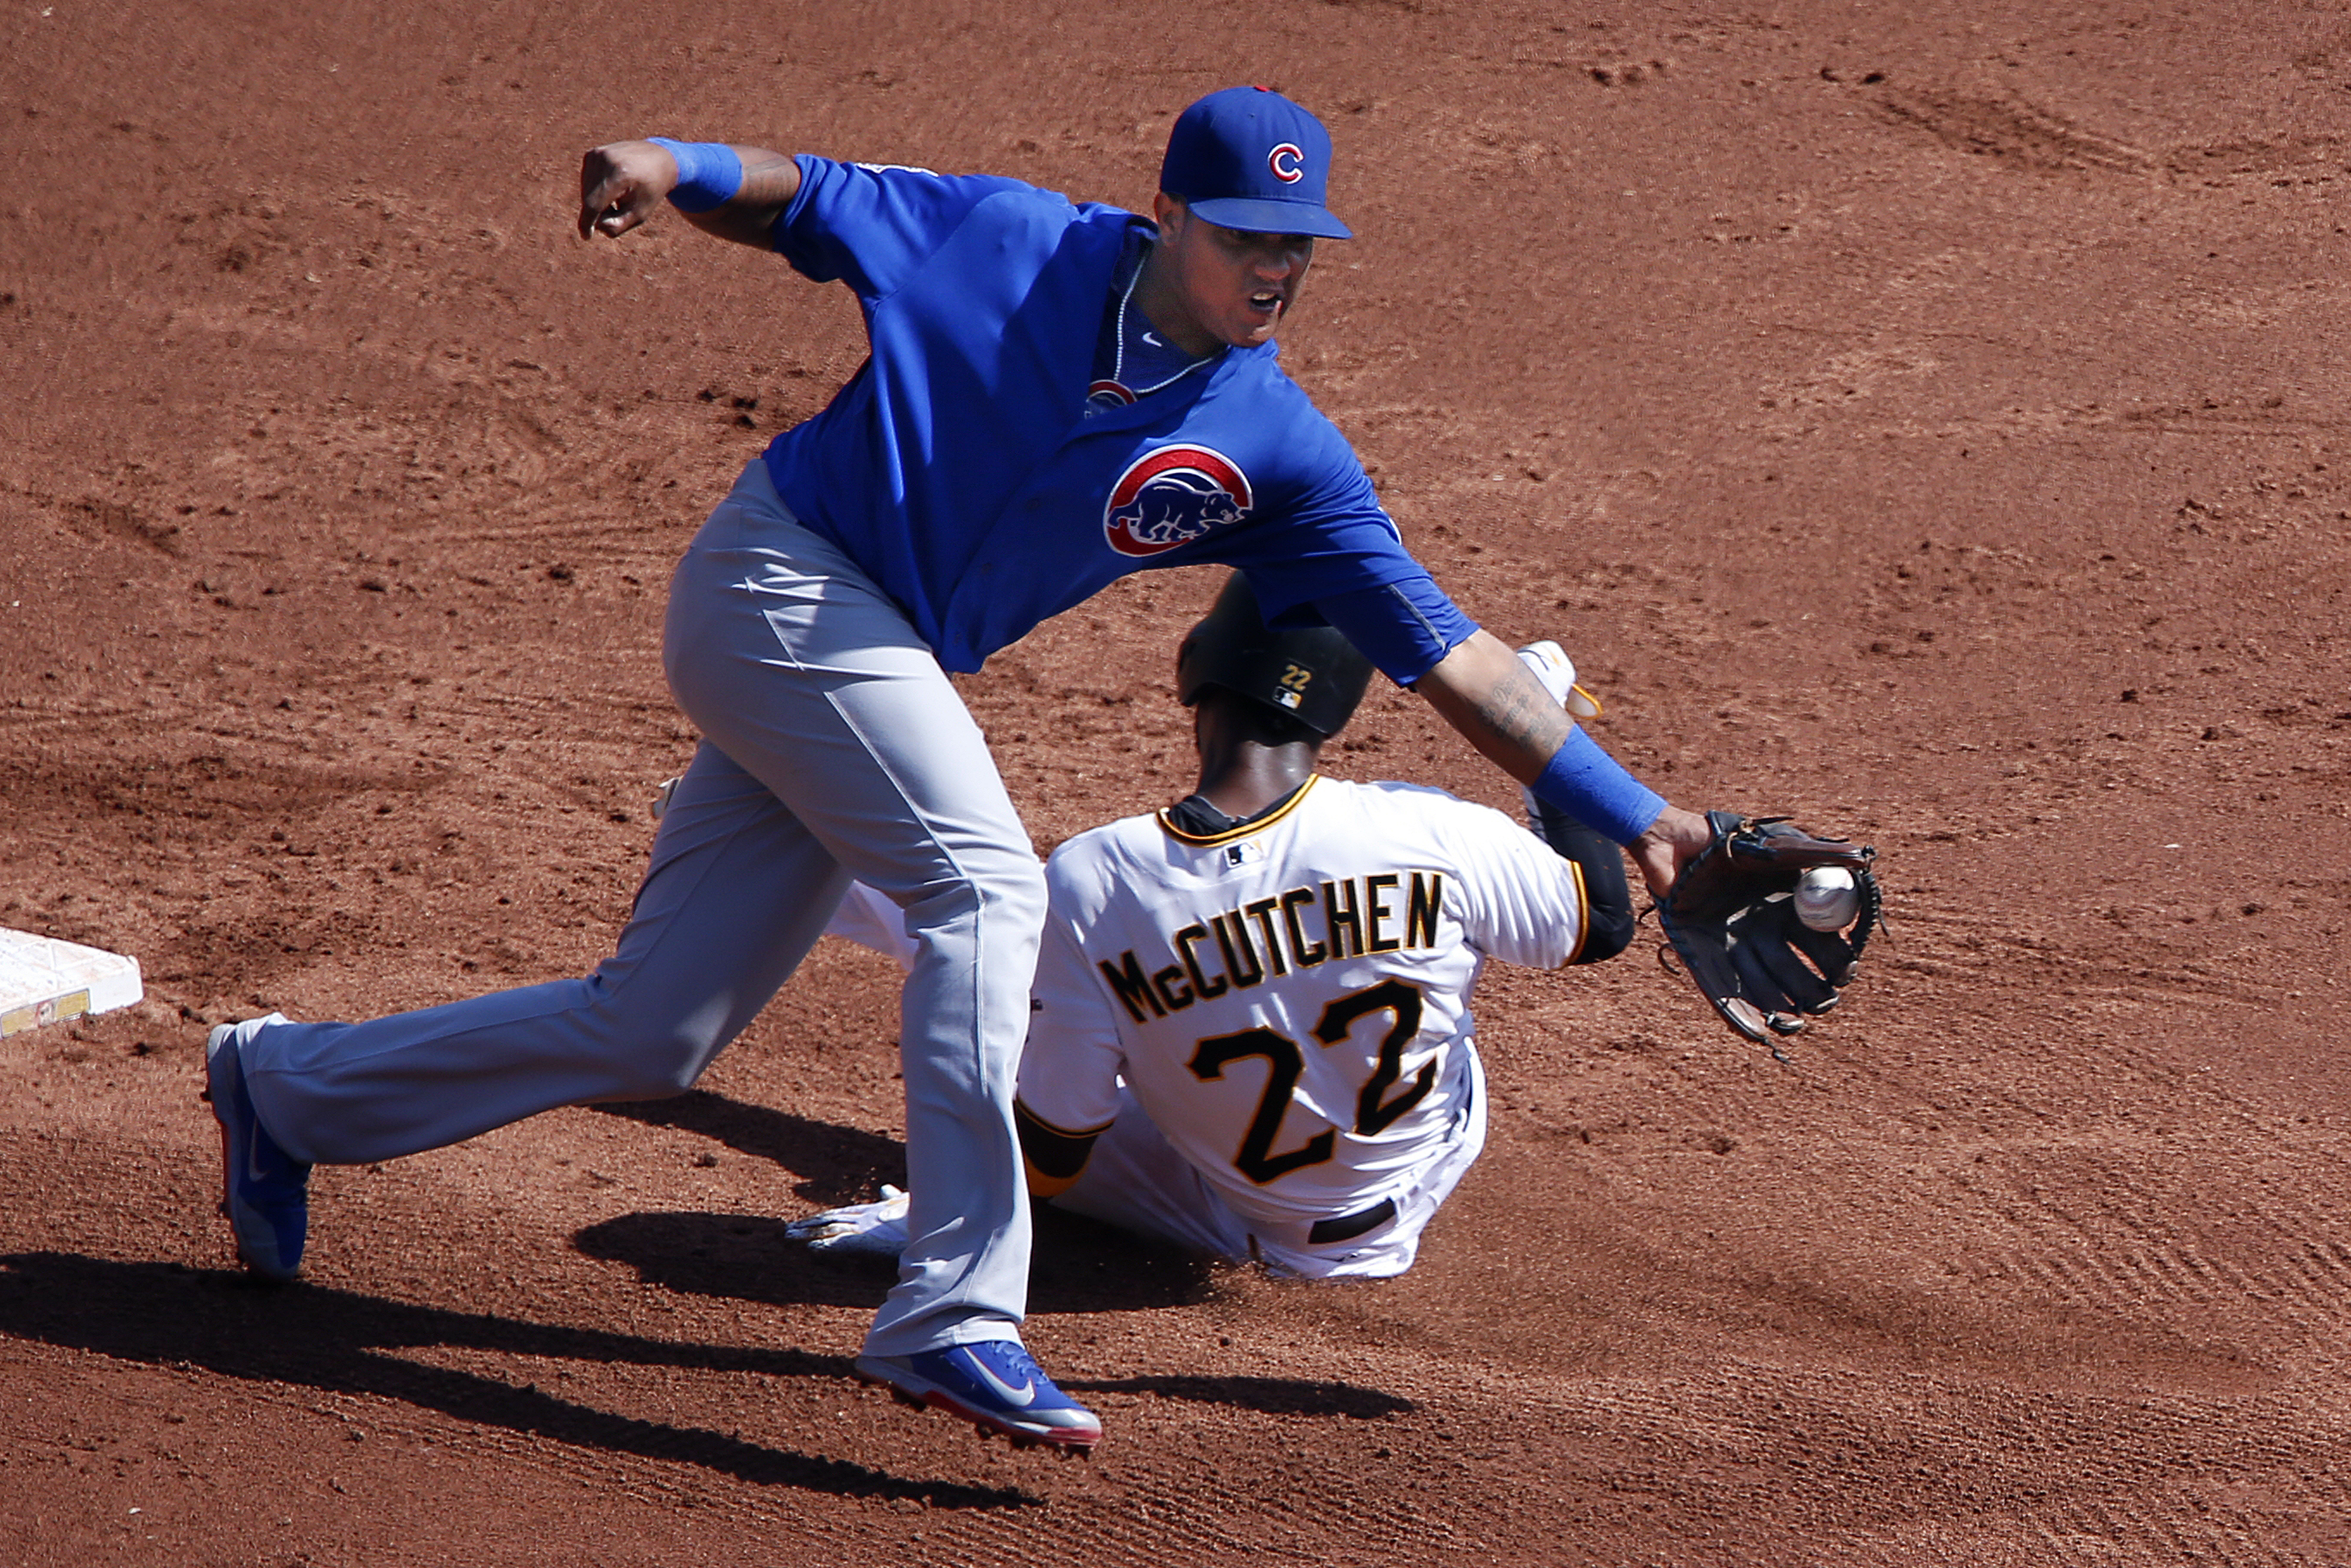 Chicago Cubs second baseman Starlin Castro reaches for a wide throw from catcher Miguel Montero as Pittsburgh Pirates' Andrew McCutchen (22) steals second during the third inning of the first baseball game of a doubleheader in Pittsburgh, Tuesday, Sept. 1